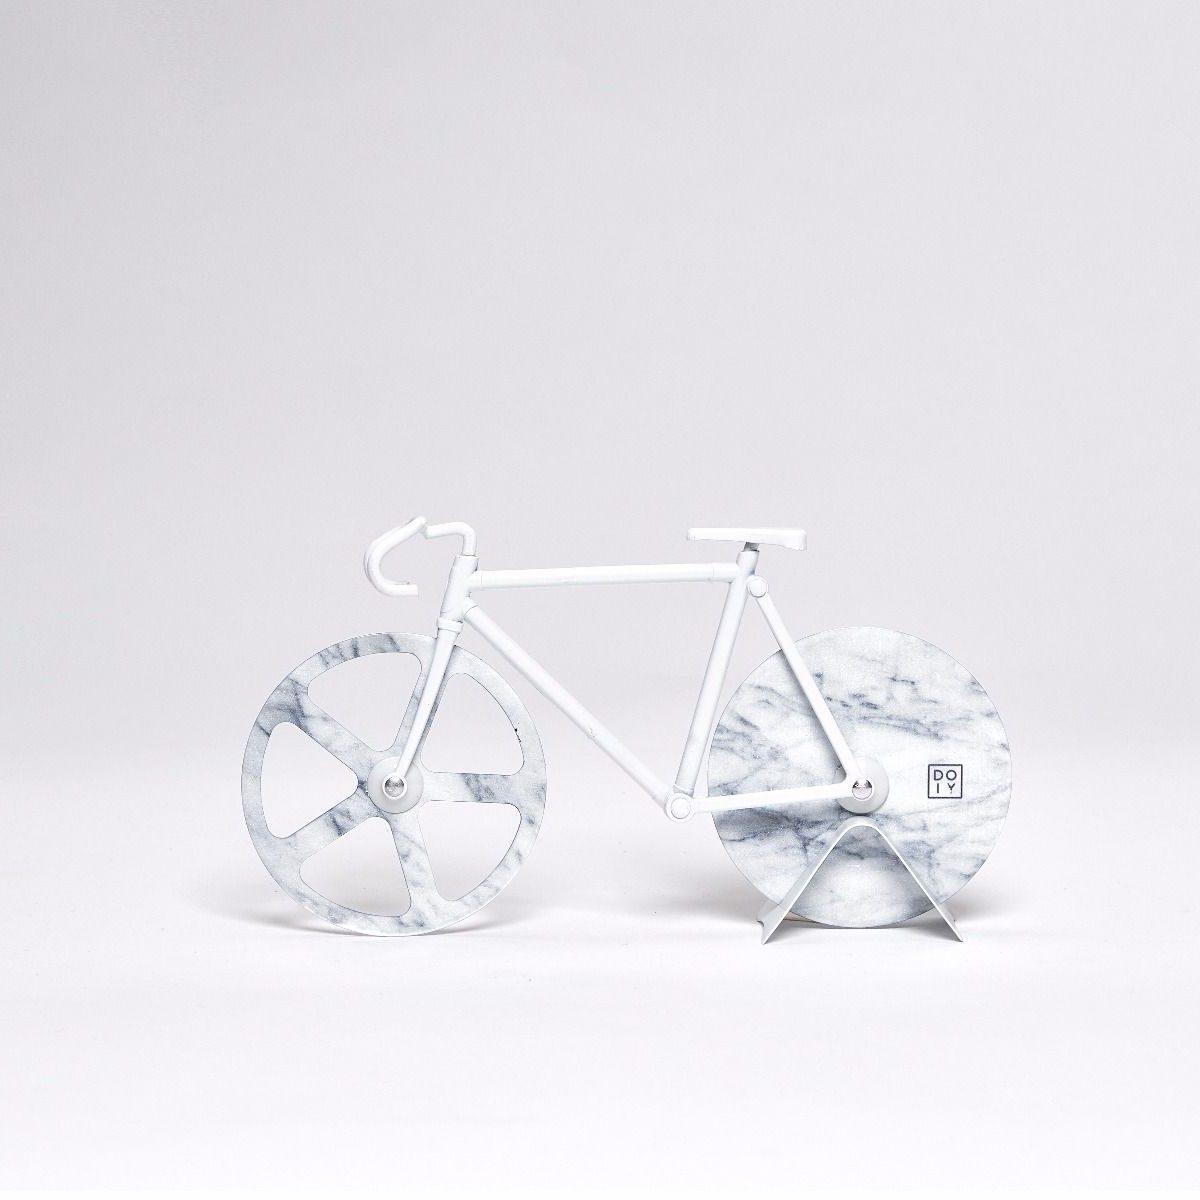 The Fixie White Marble Pizza Cutter